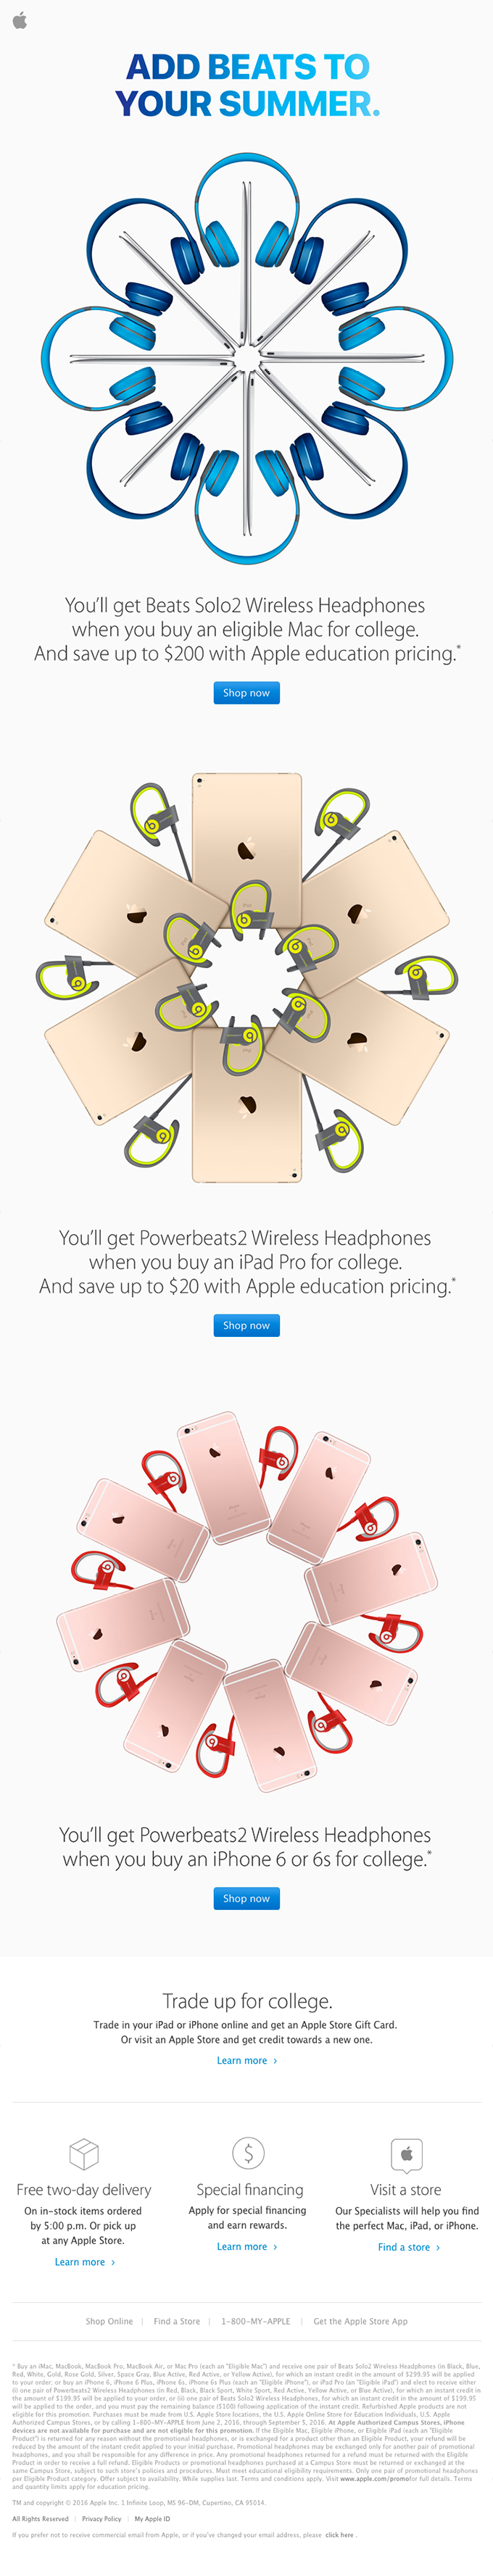 Buy an eligible Mac, iPad, or iPhone for college. Get Beats.